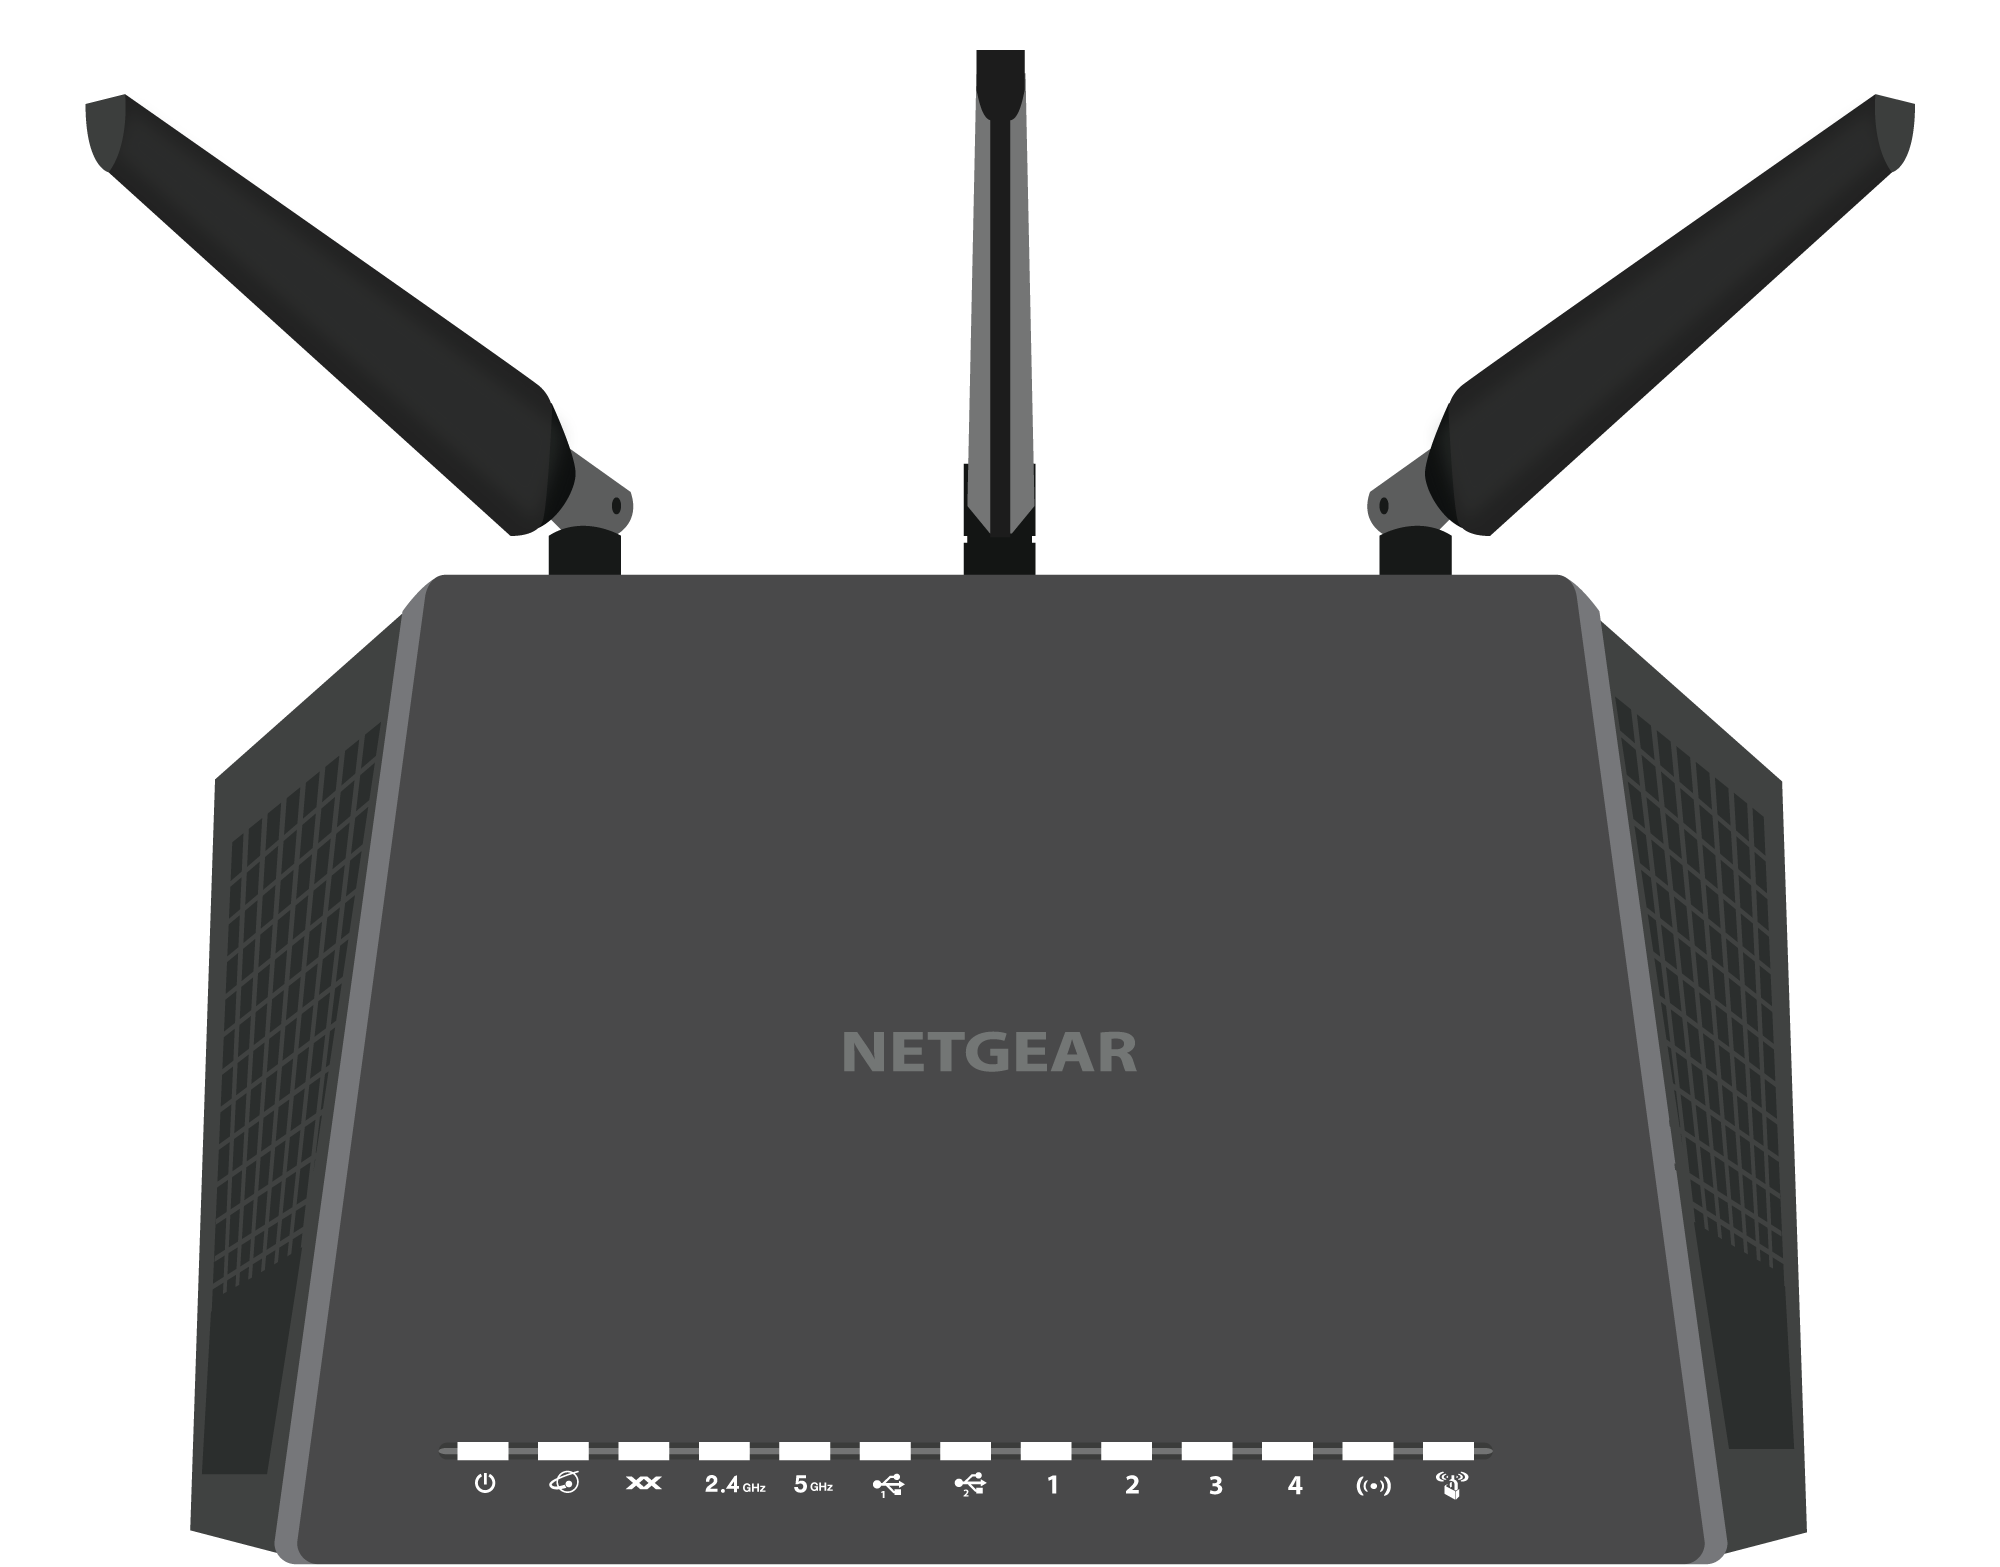 Netgear R6400 Router Top Down